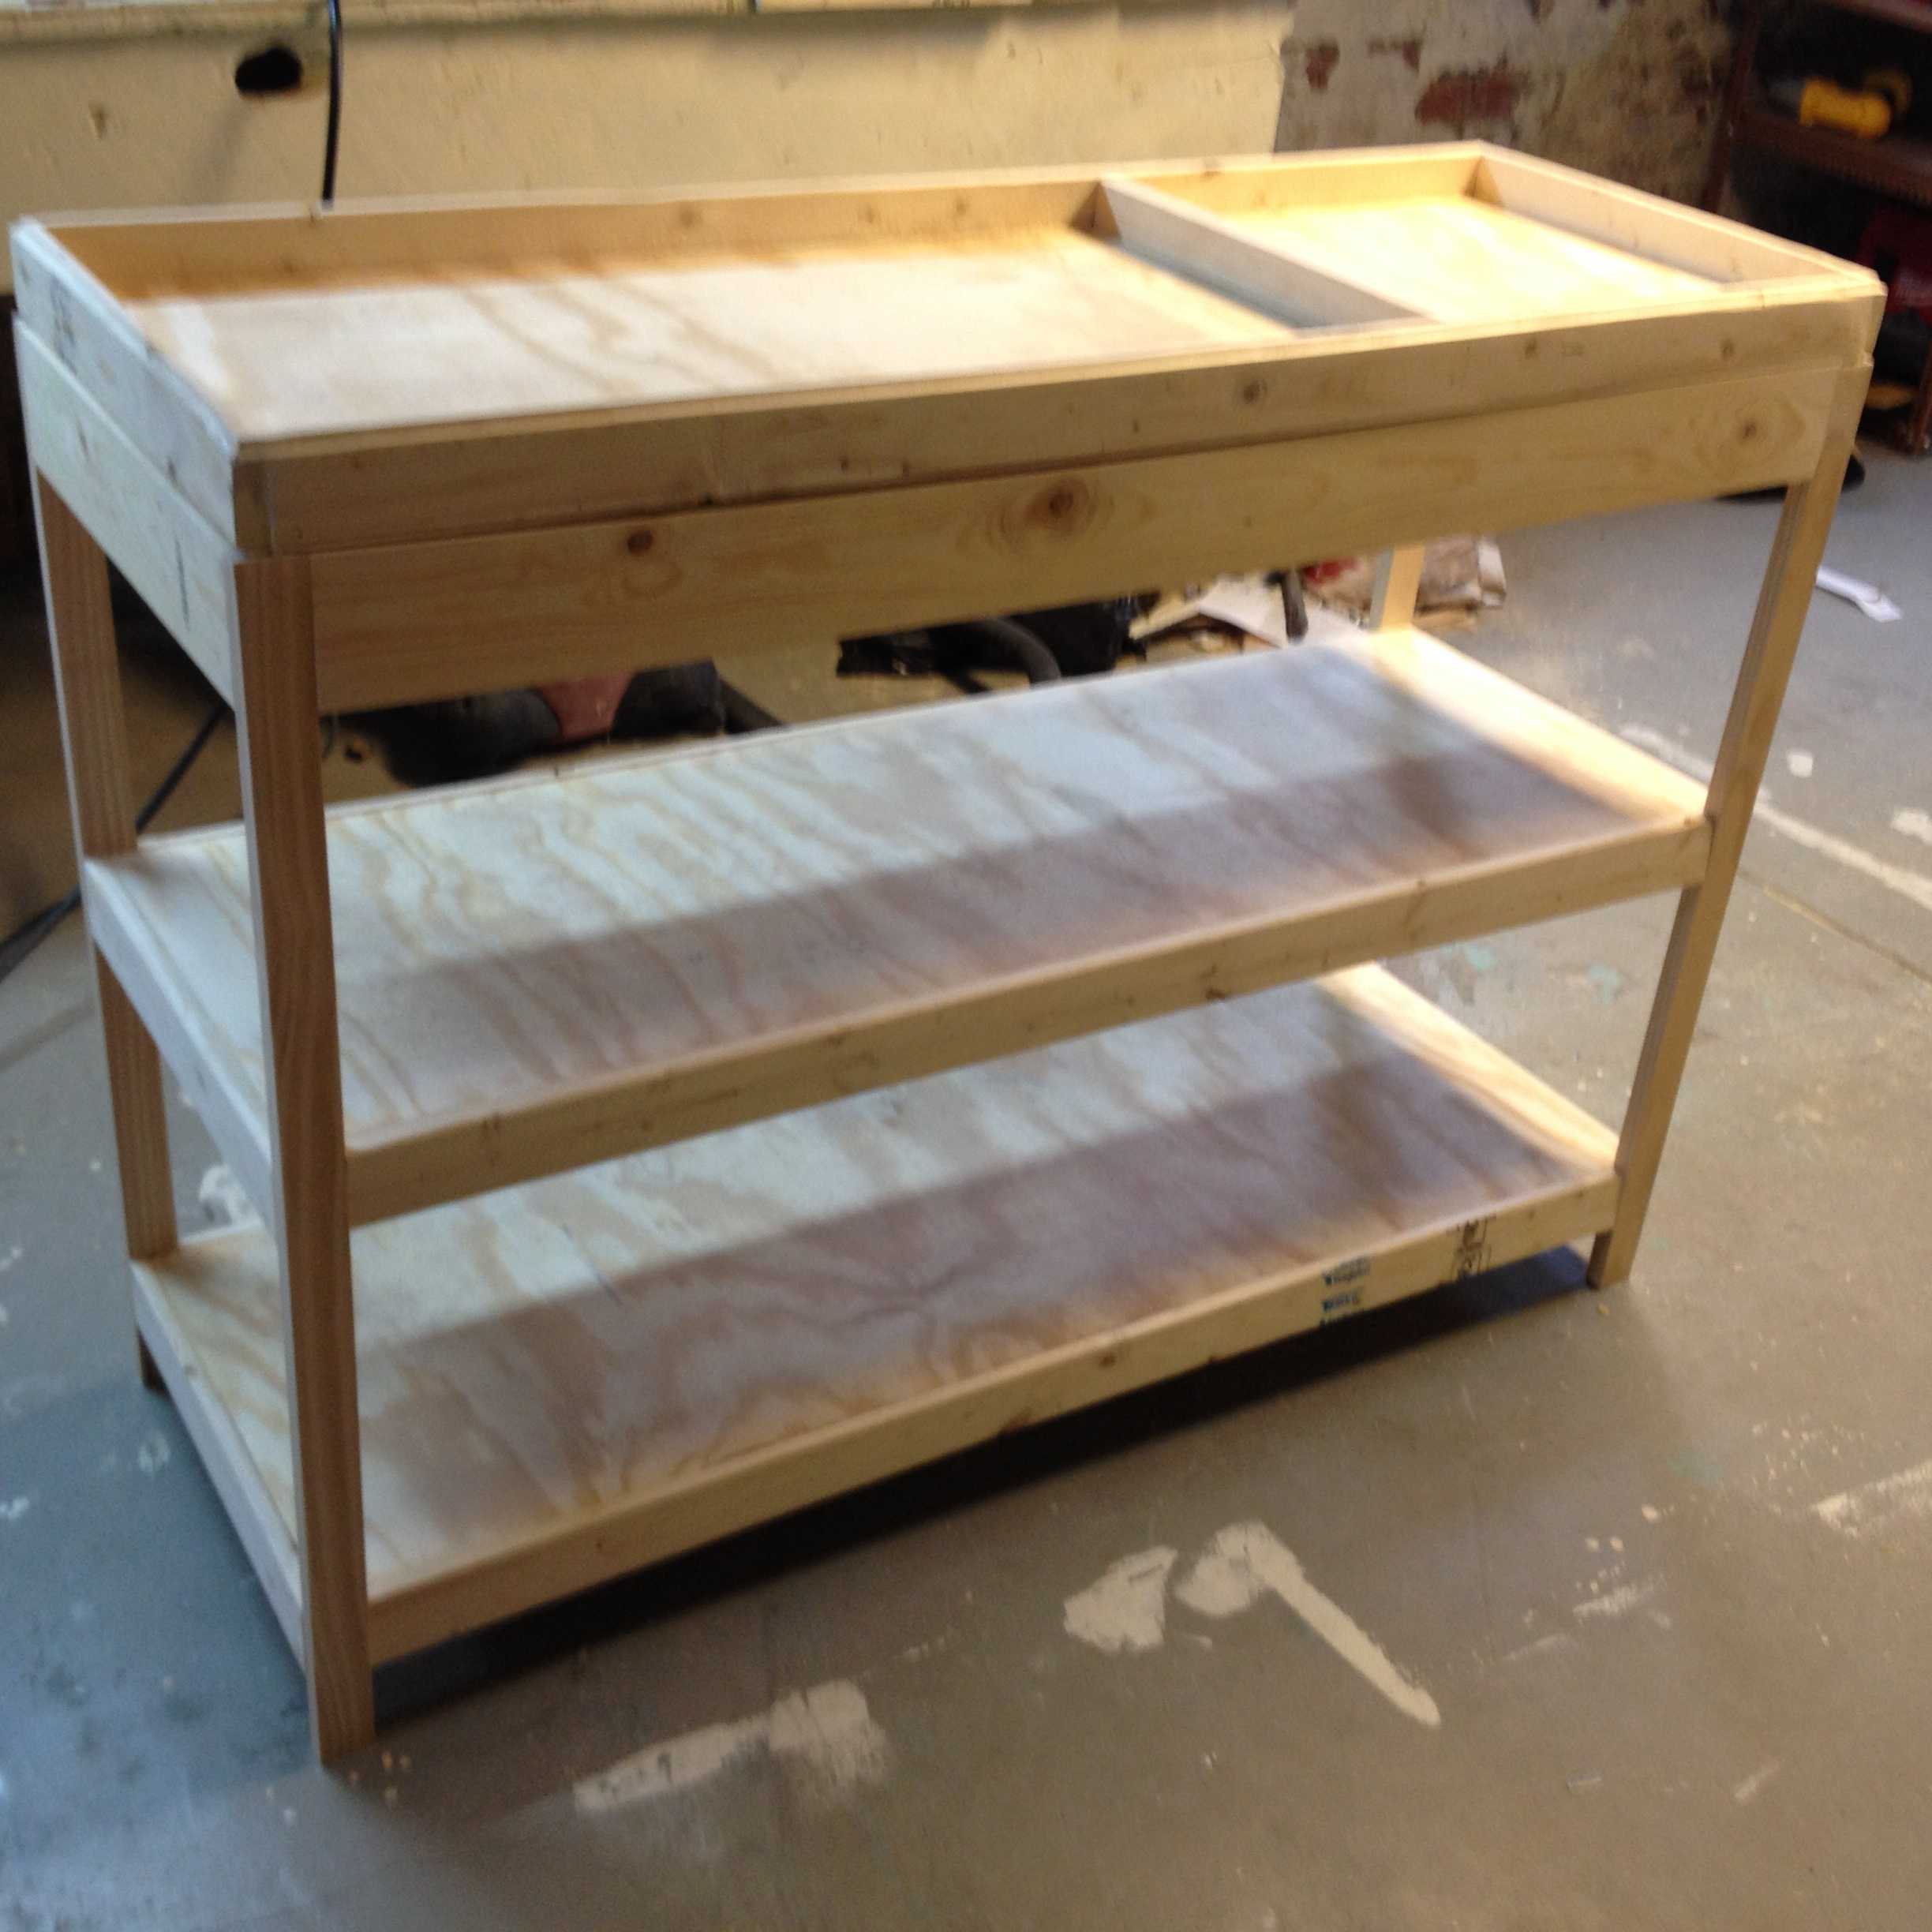 Building A Changing Table Frugal Living